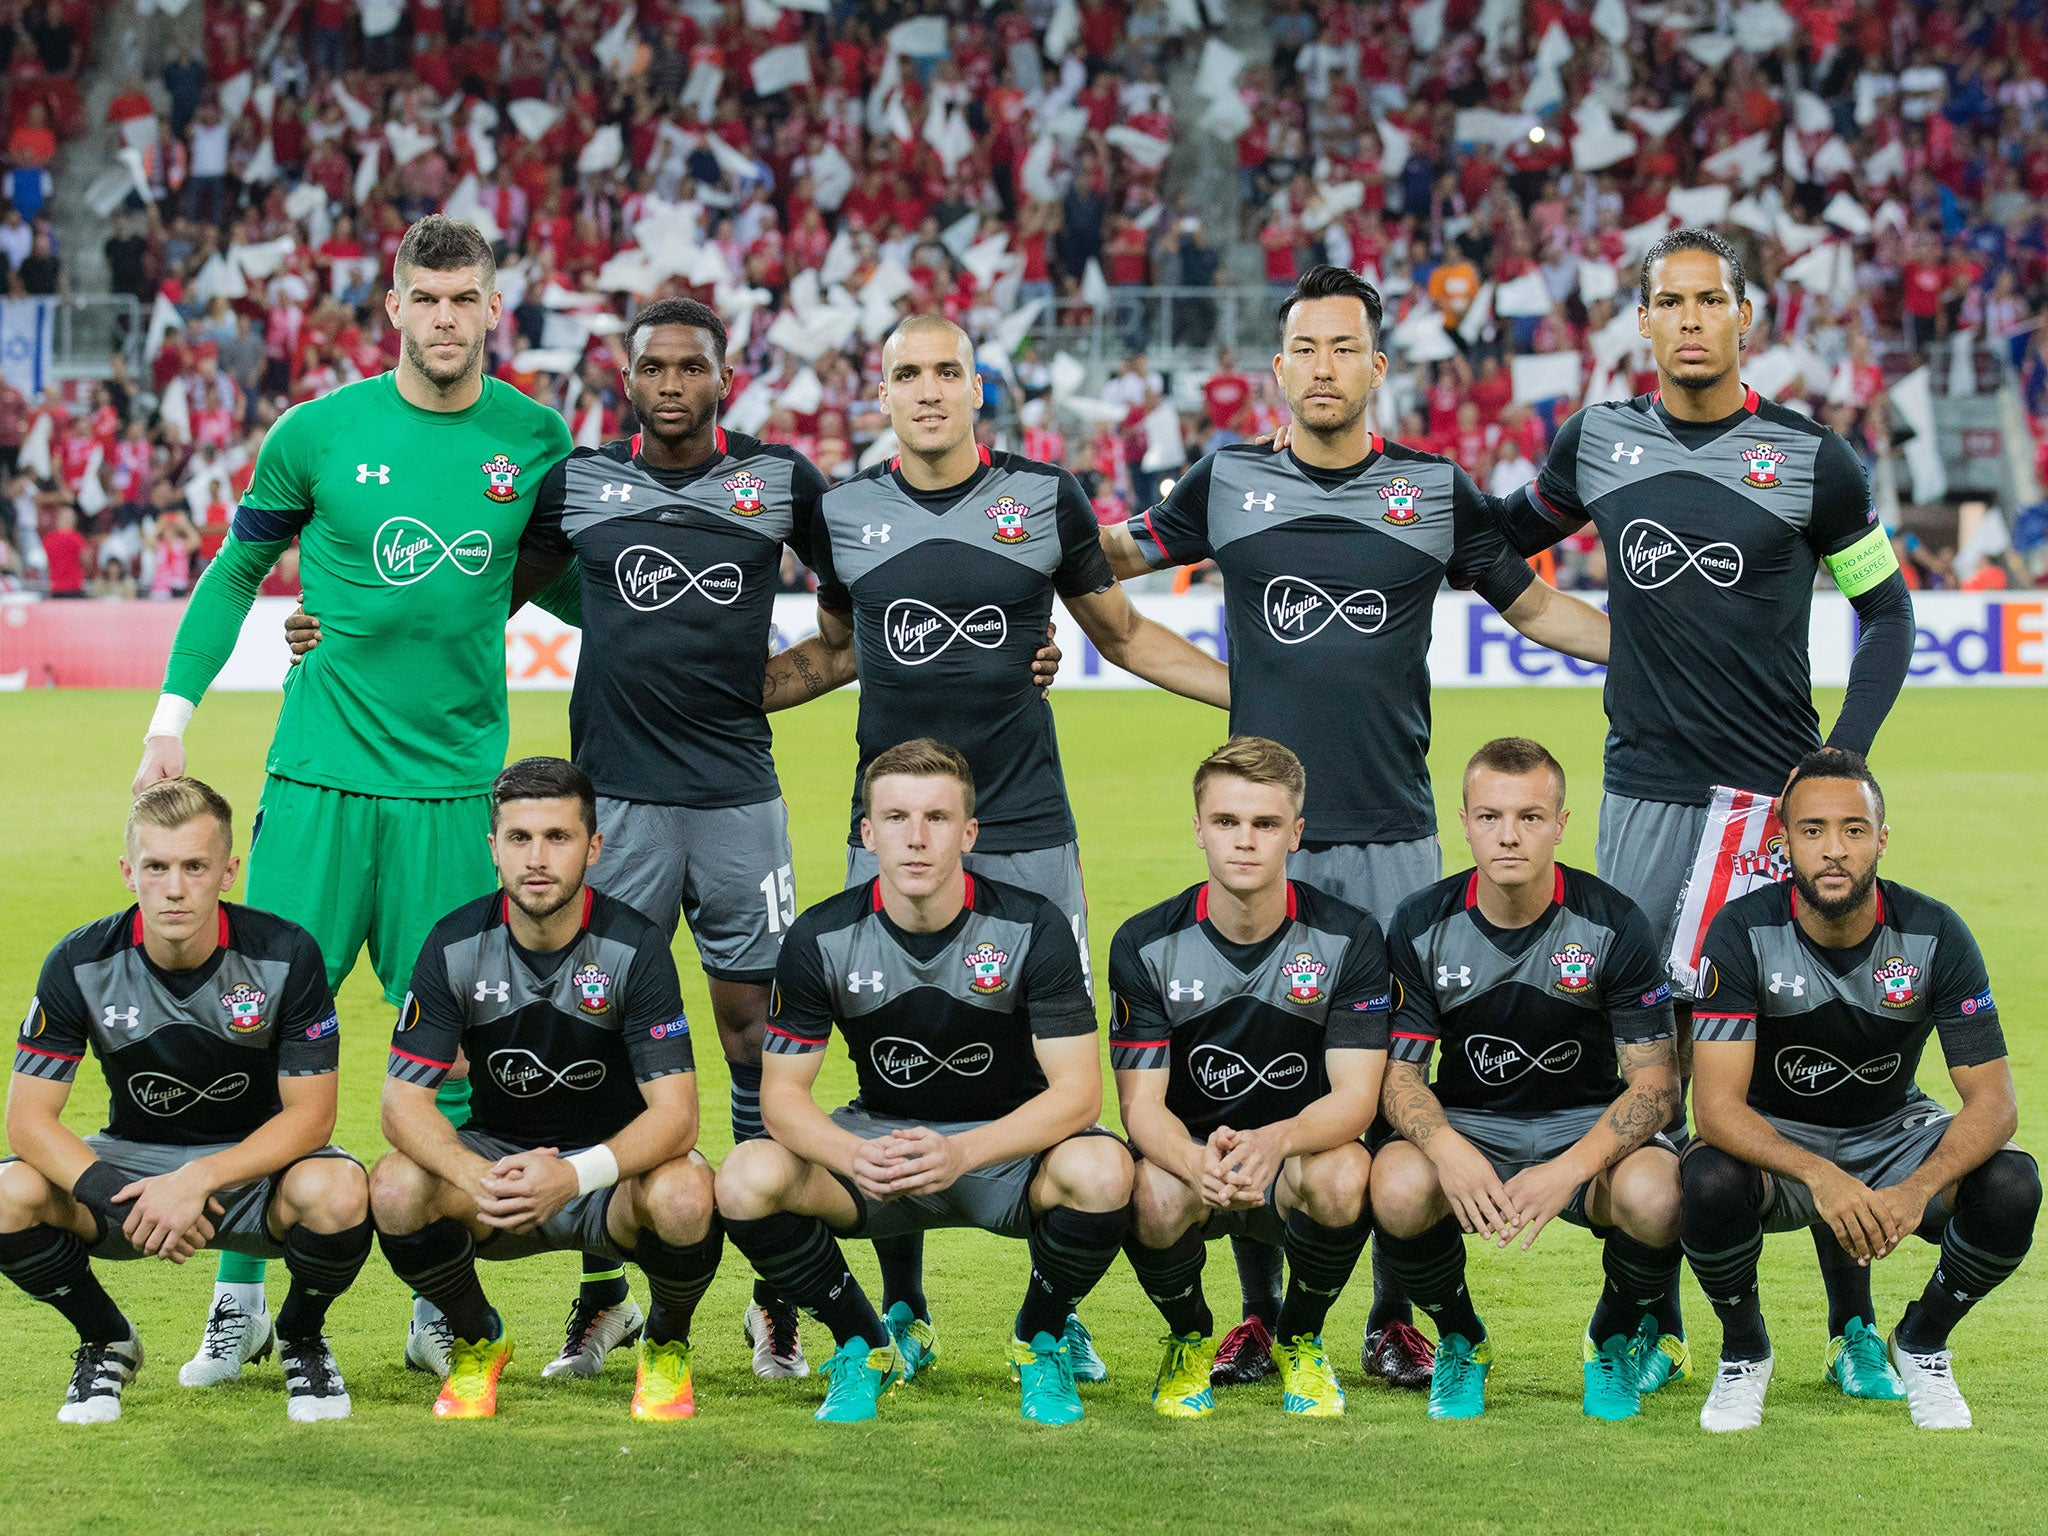 Southampton News: Saints Held Up For Half A Day In Israel